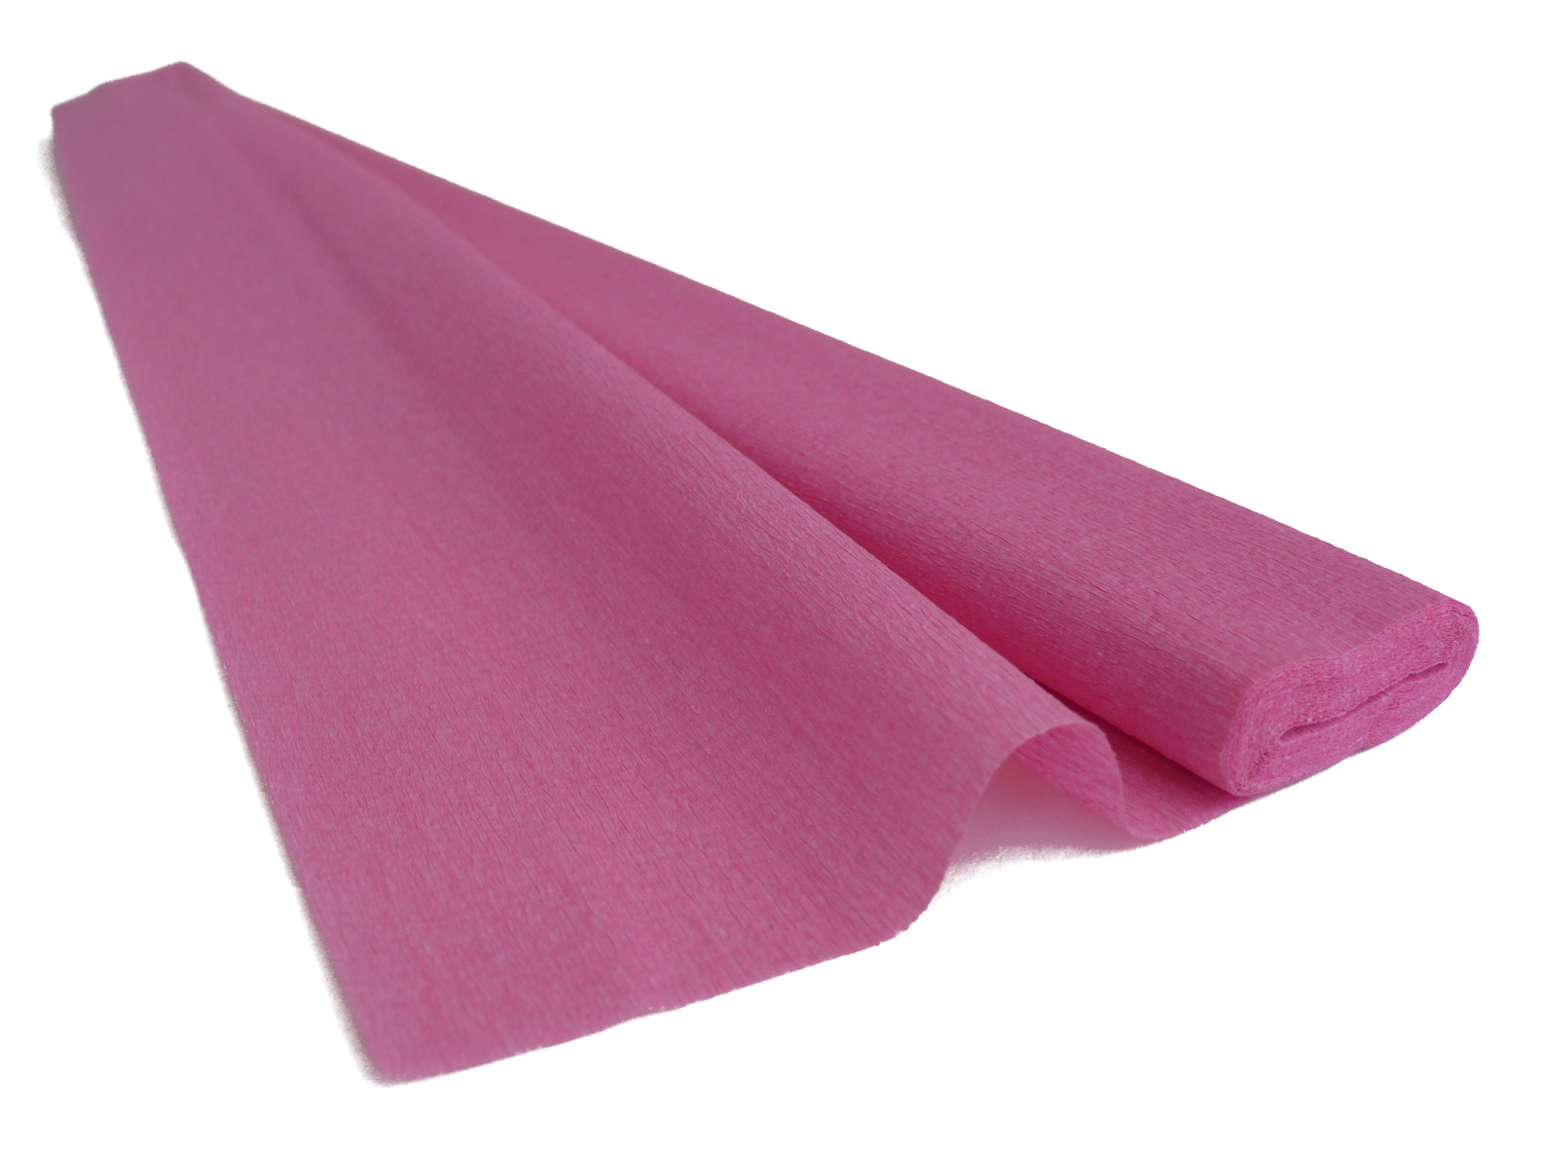 Italian Crepe Paper roll 60 gram - 202 PEACH BLOSSOM PINK